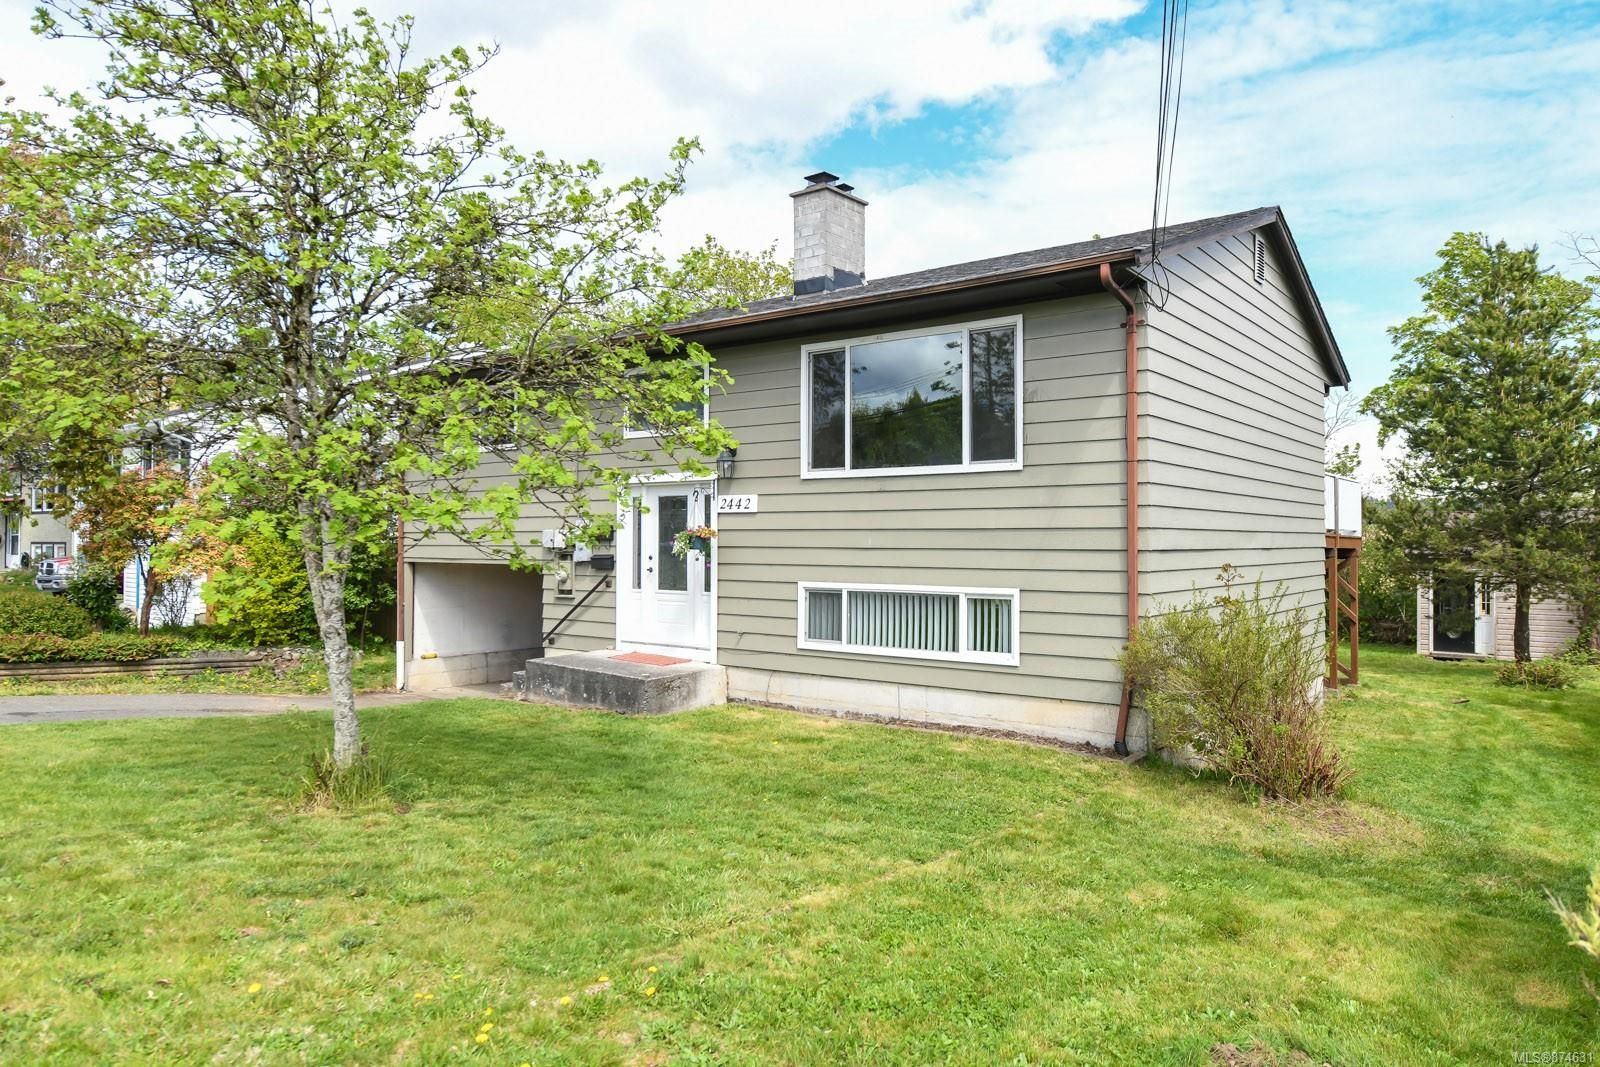 Main Photo: 2442 Fitzgerald Ave in : CV Courtenay City House for sale (Comox Valley)  : MLS®# 874631